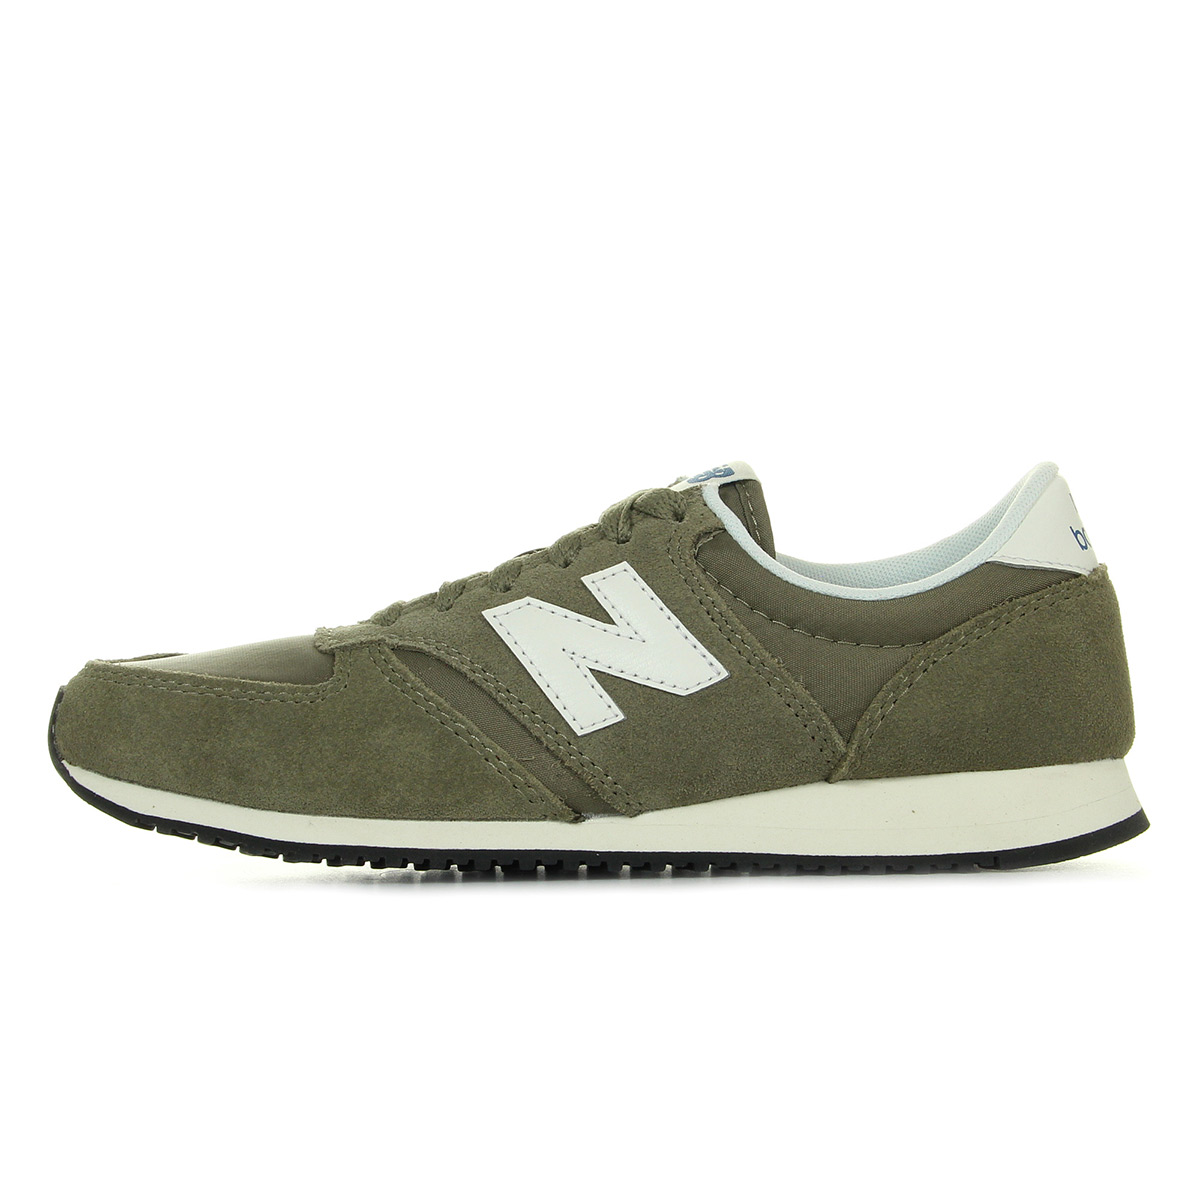 New Balance U420 GRB U420GRB, Baskets mode